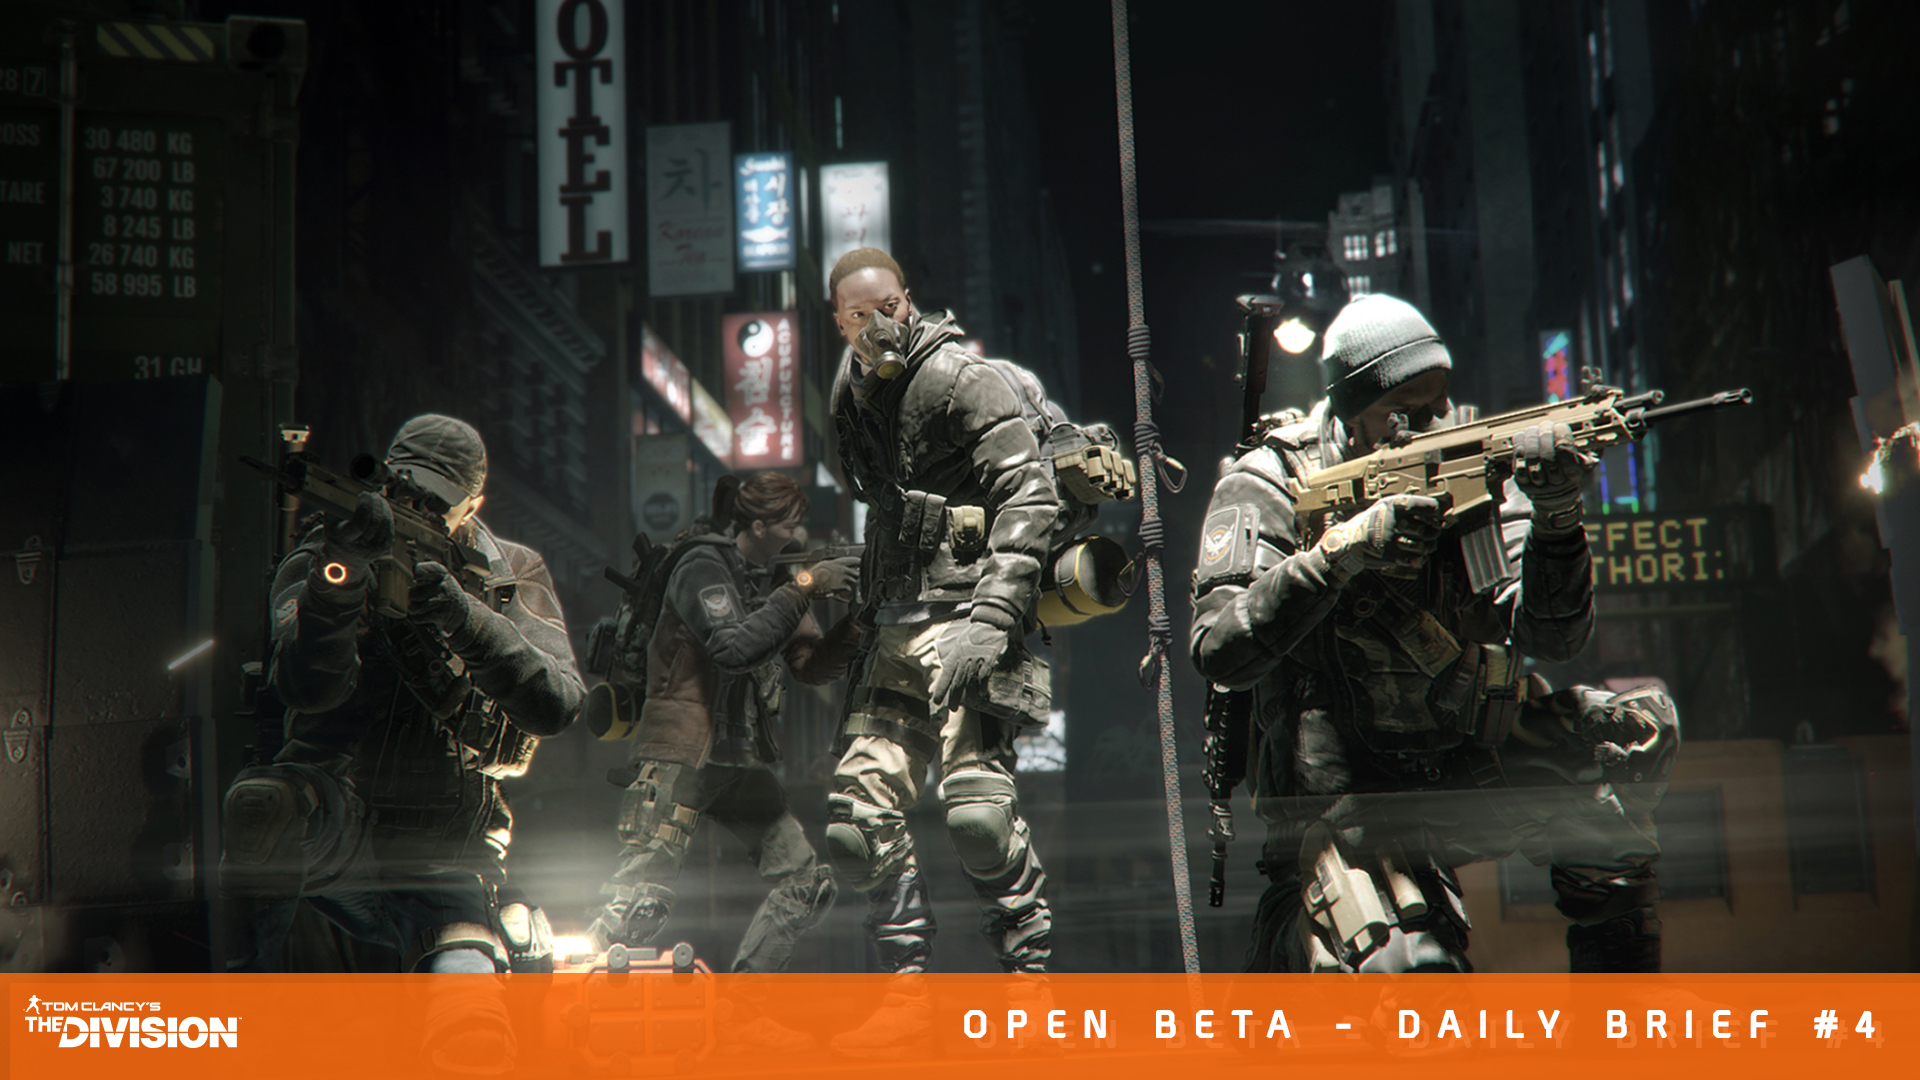 The Division Daily4_239193